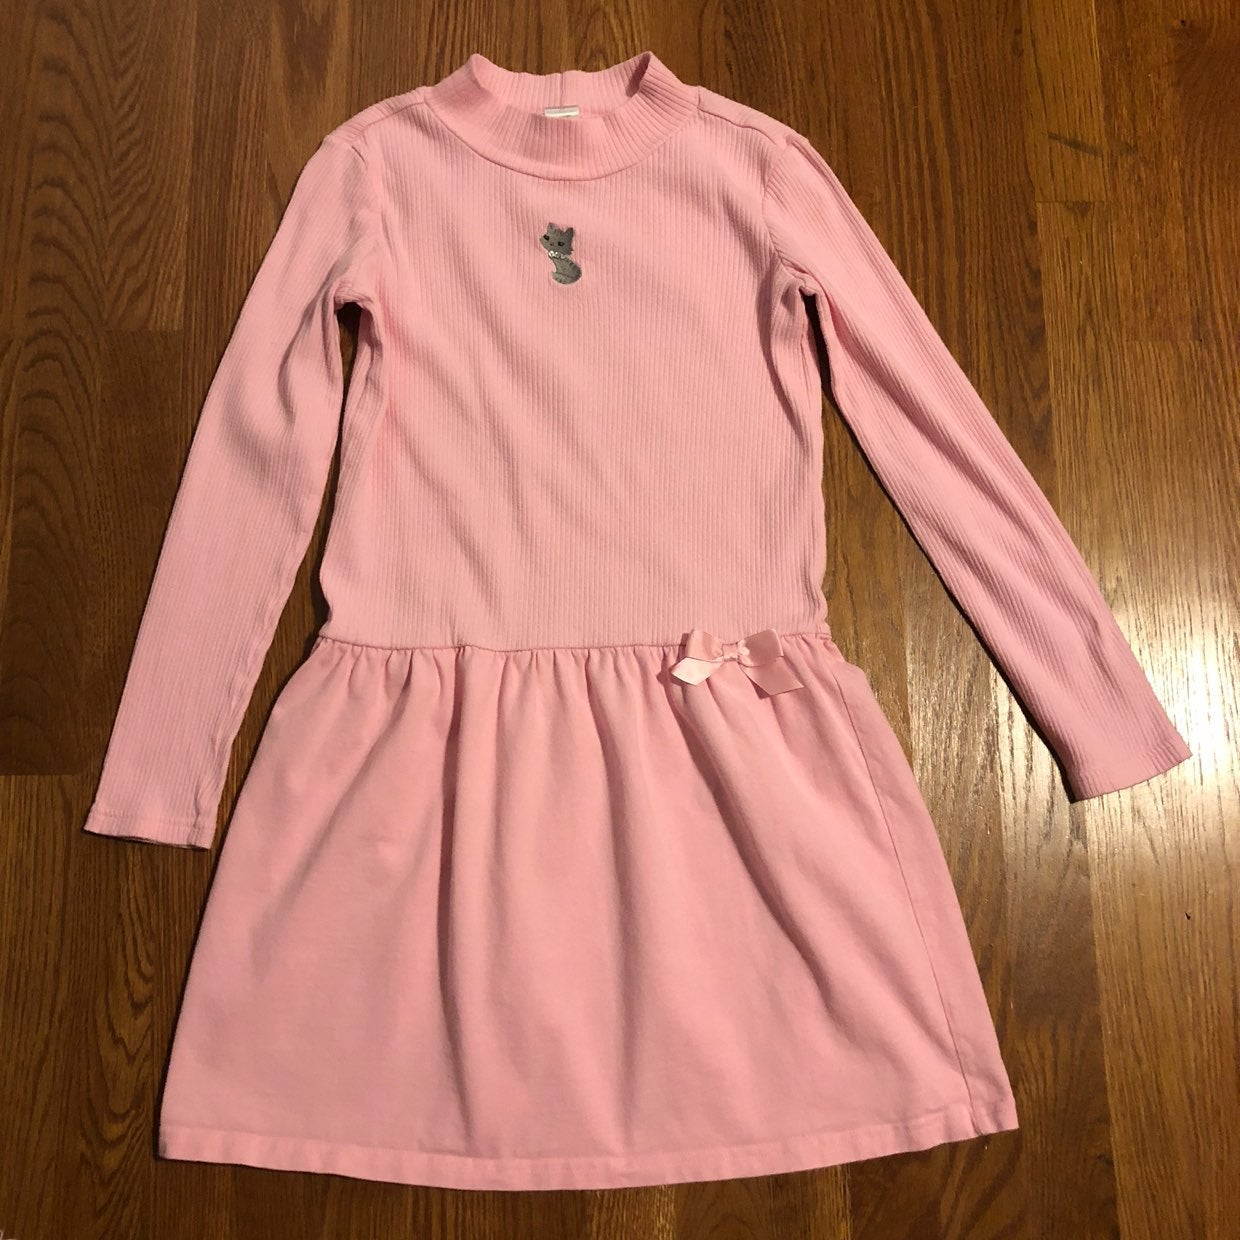 Gymboree Pink Knit Dress Size 12